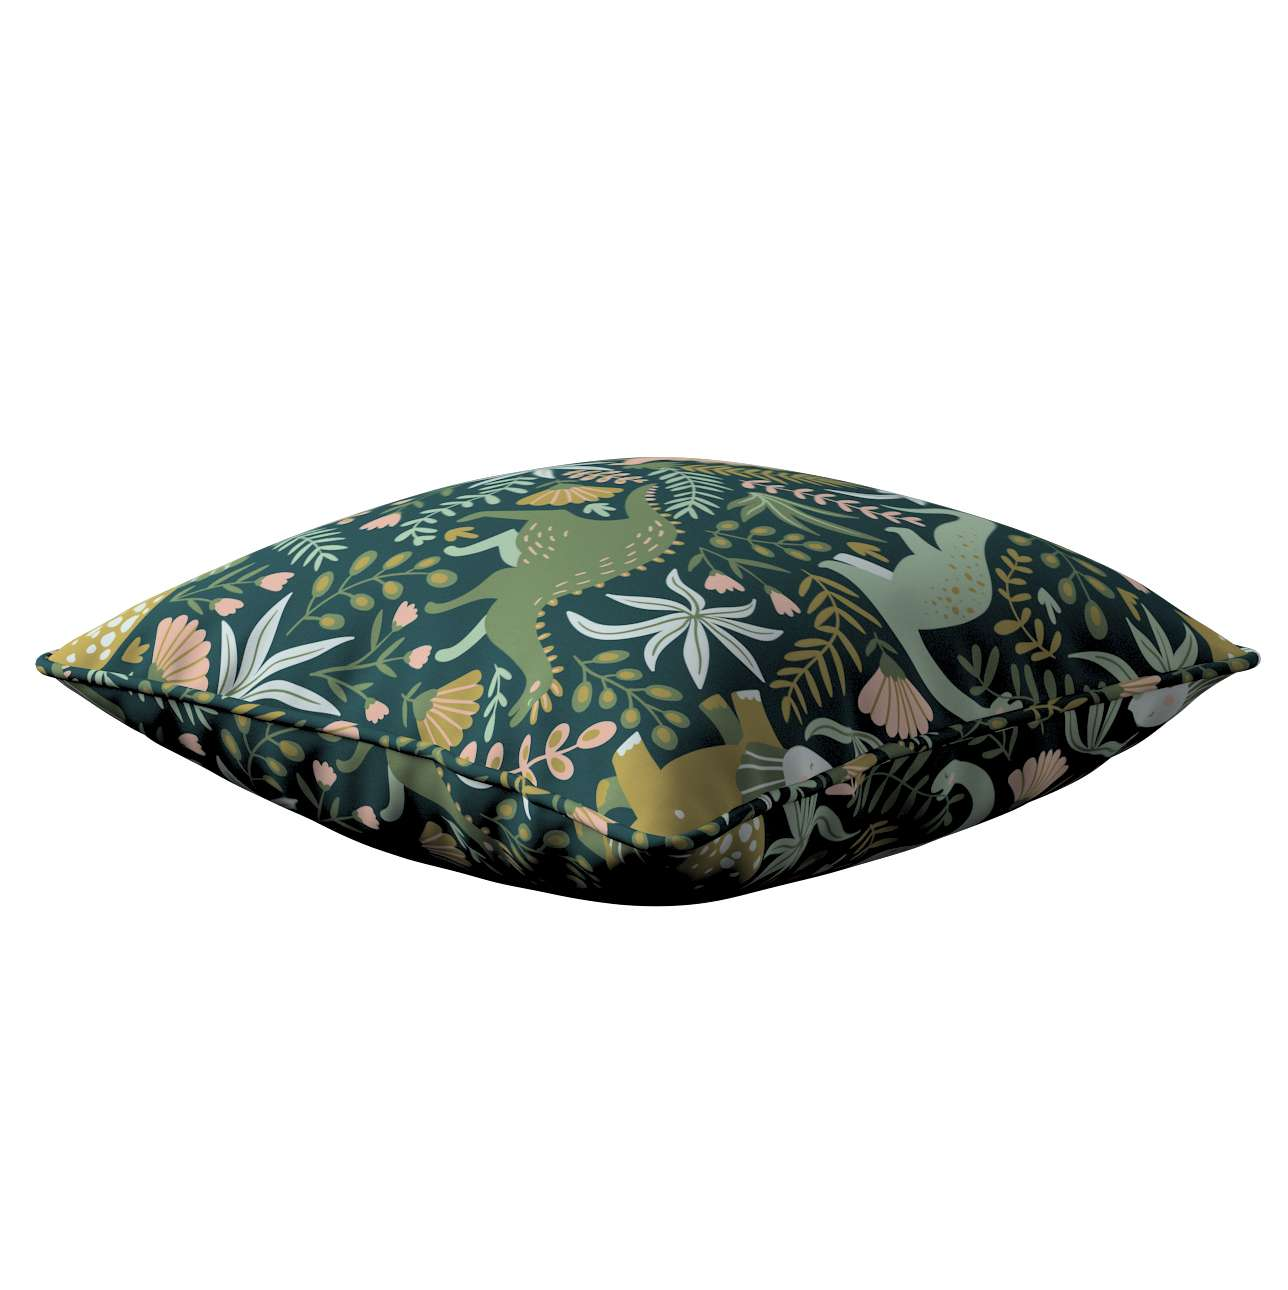 Lola piped cushion cover in collection Magic Collection, fabric: 500-20